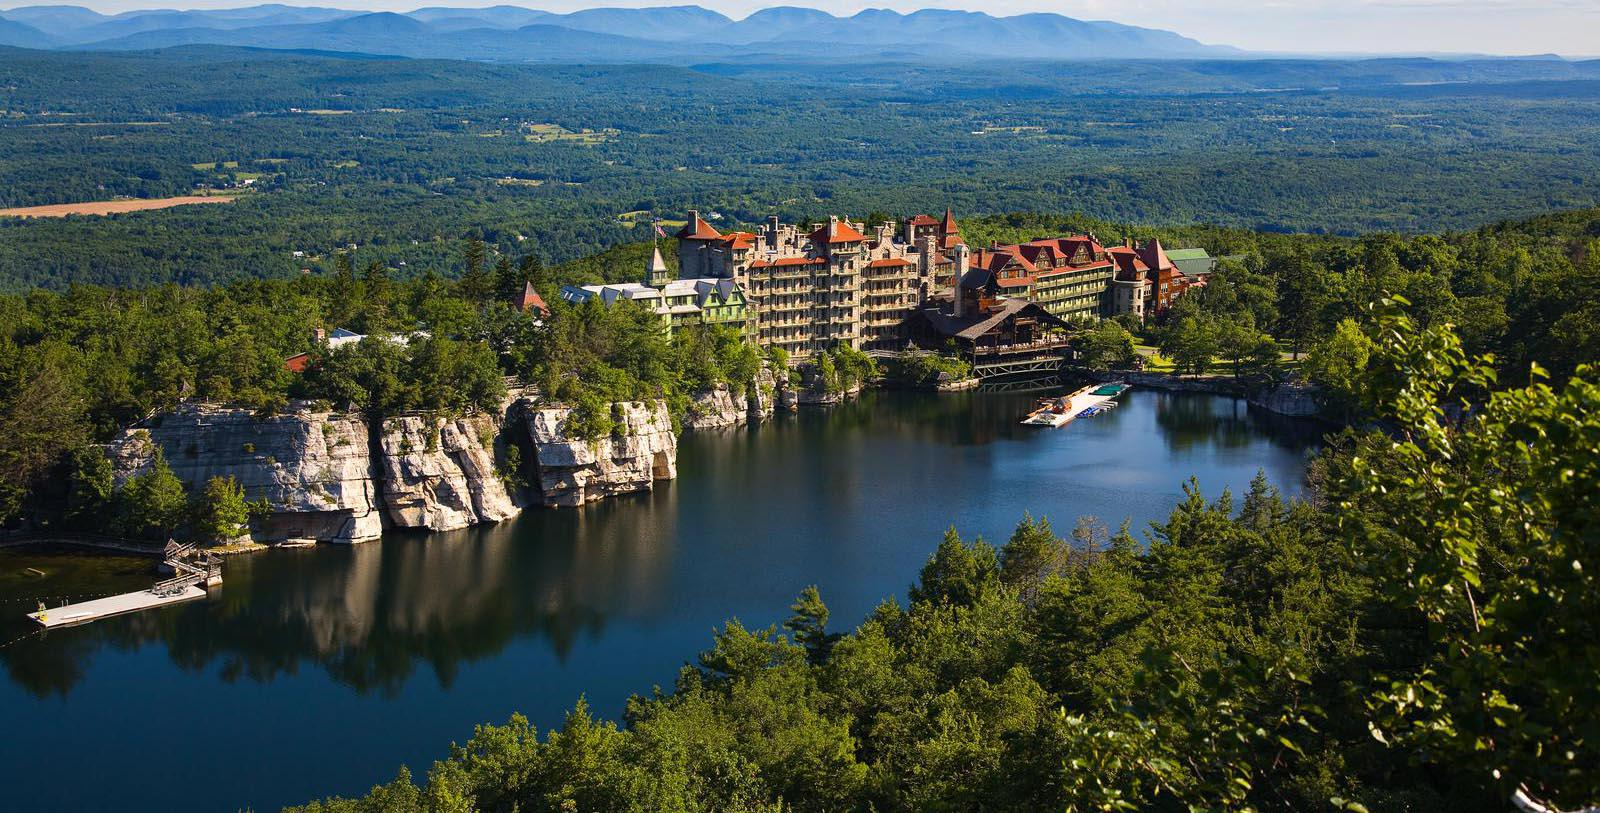 Image Hotel Exterior & Landscape, Mohonk Mountain House, New Paltz, New York, 1869, Member of Historic Hotels of America, Special Offers, Discounted Rates, Families, Romantic Escape, Honeymoons, Anniversaries, Reunions